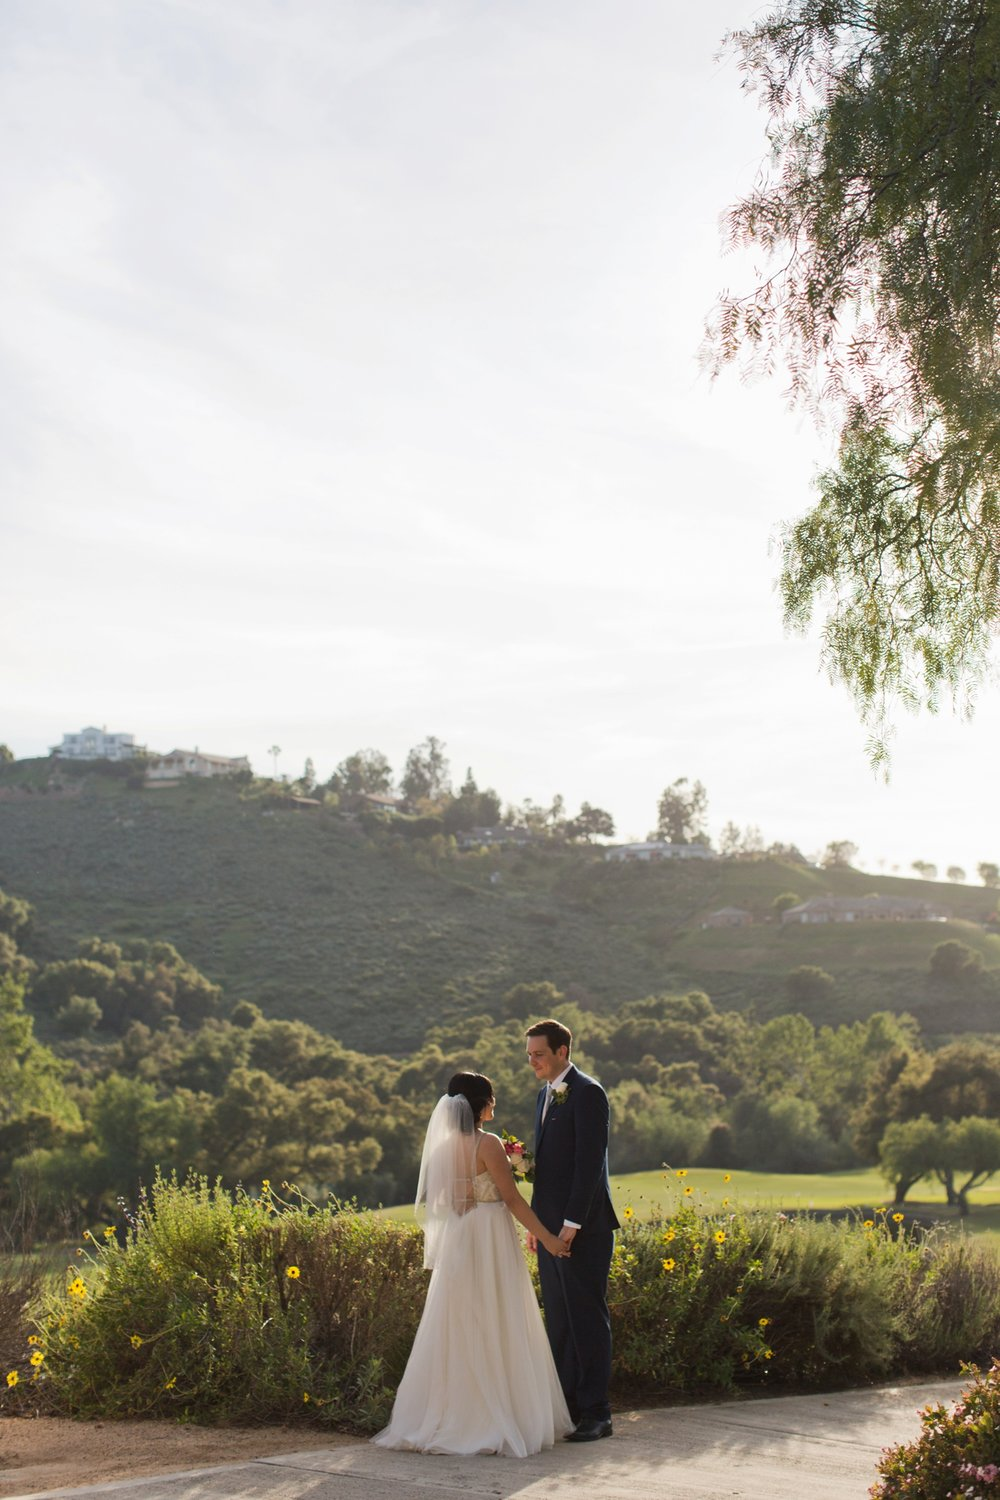 shewanders.coronado.wedding.photography.best.of168.jpg